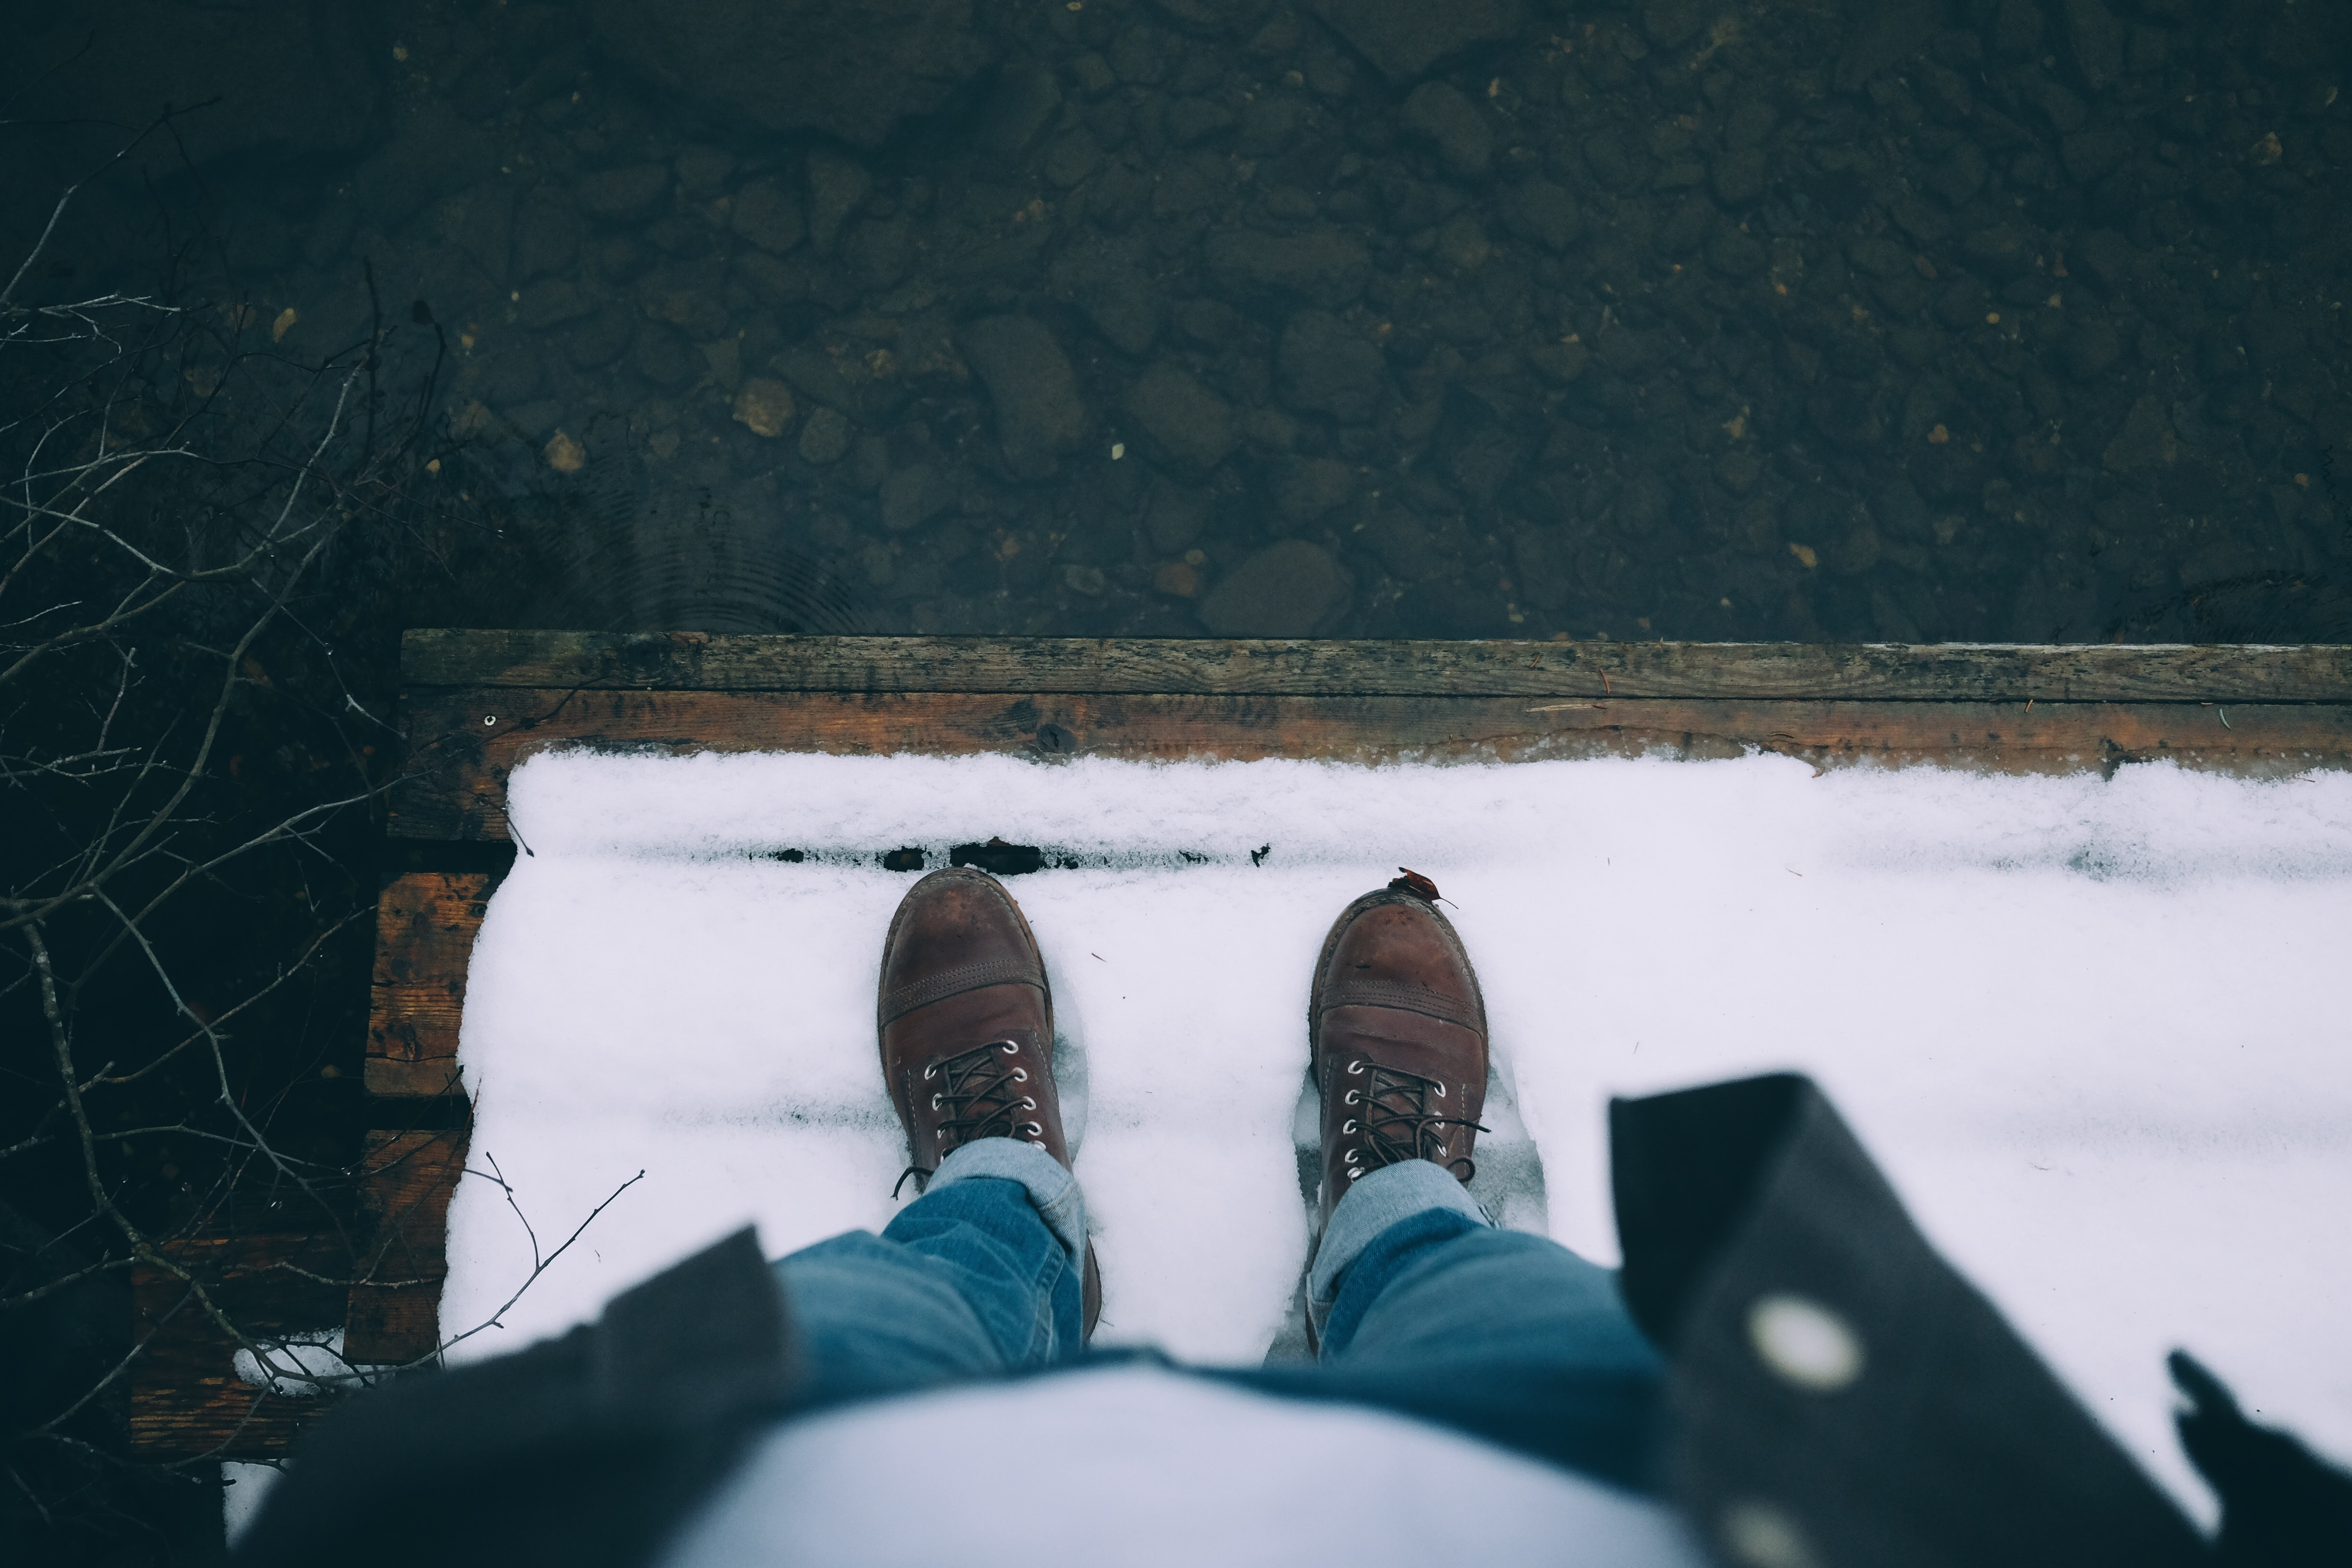 A person looking down at a pair of brown shoes in snow covered dock by the water.